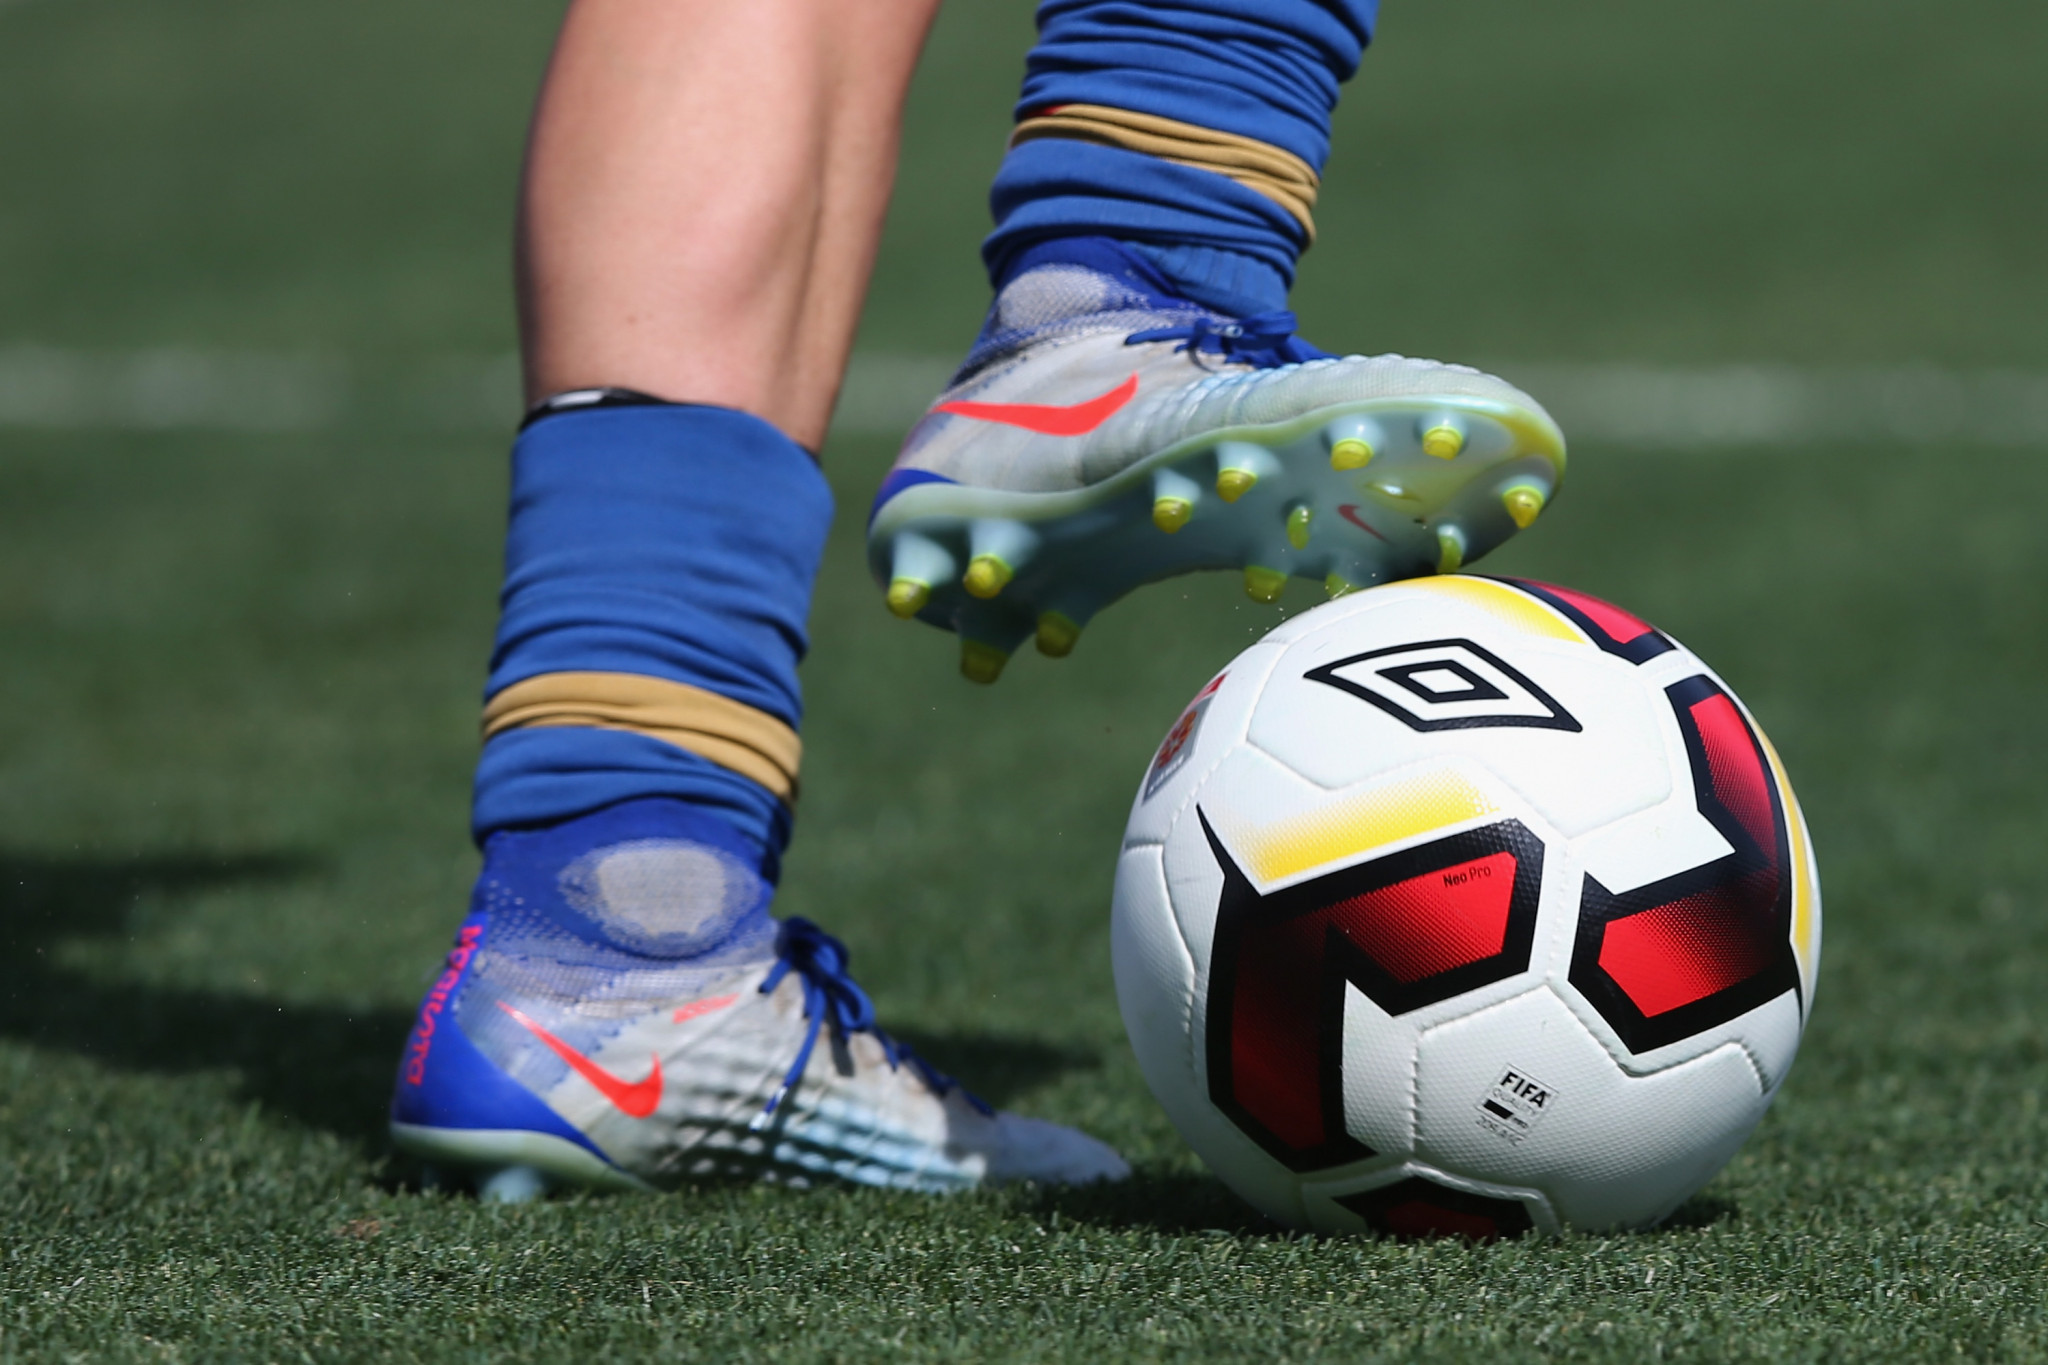 PacificAus Sports give Solomon Islands women's football league funds with sights on 2023 Pacific Games